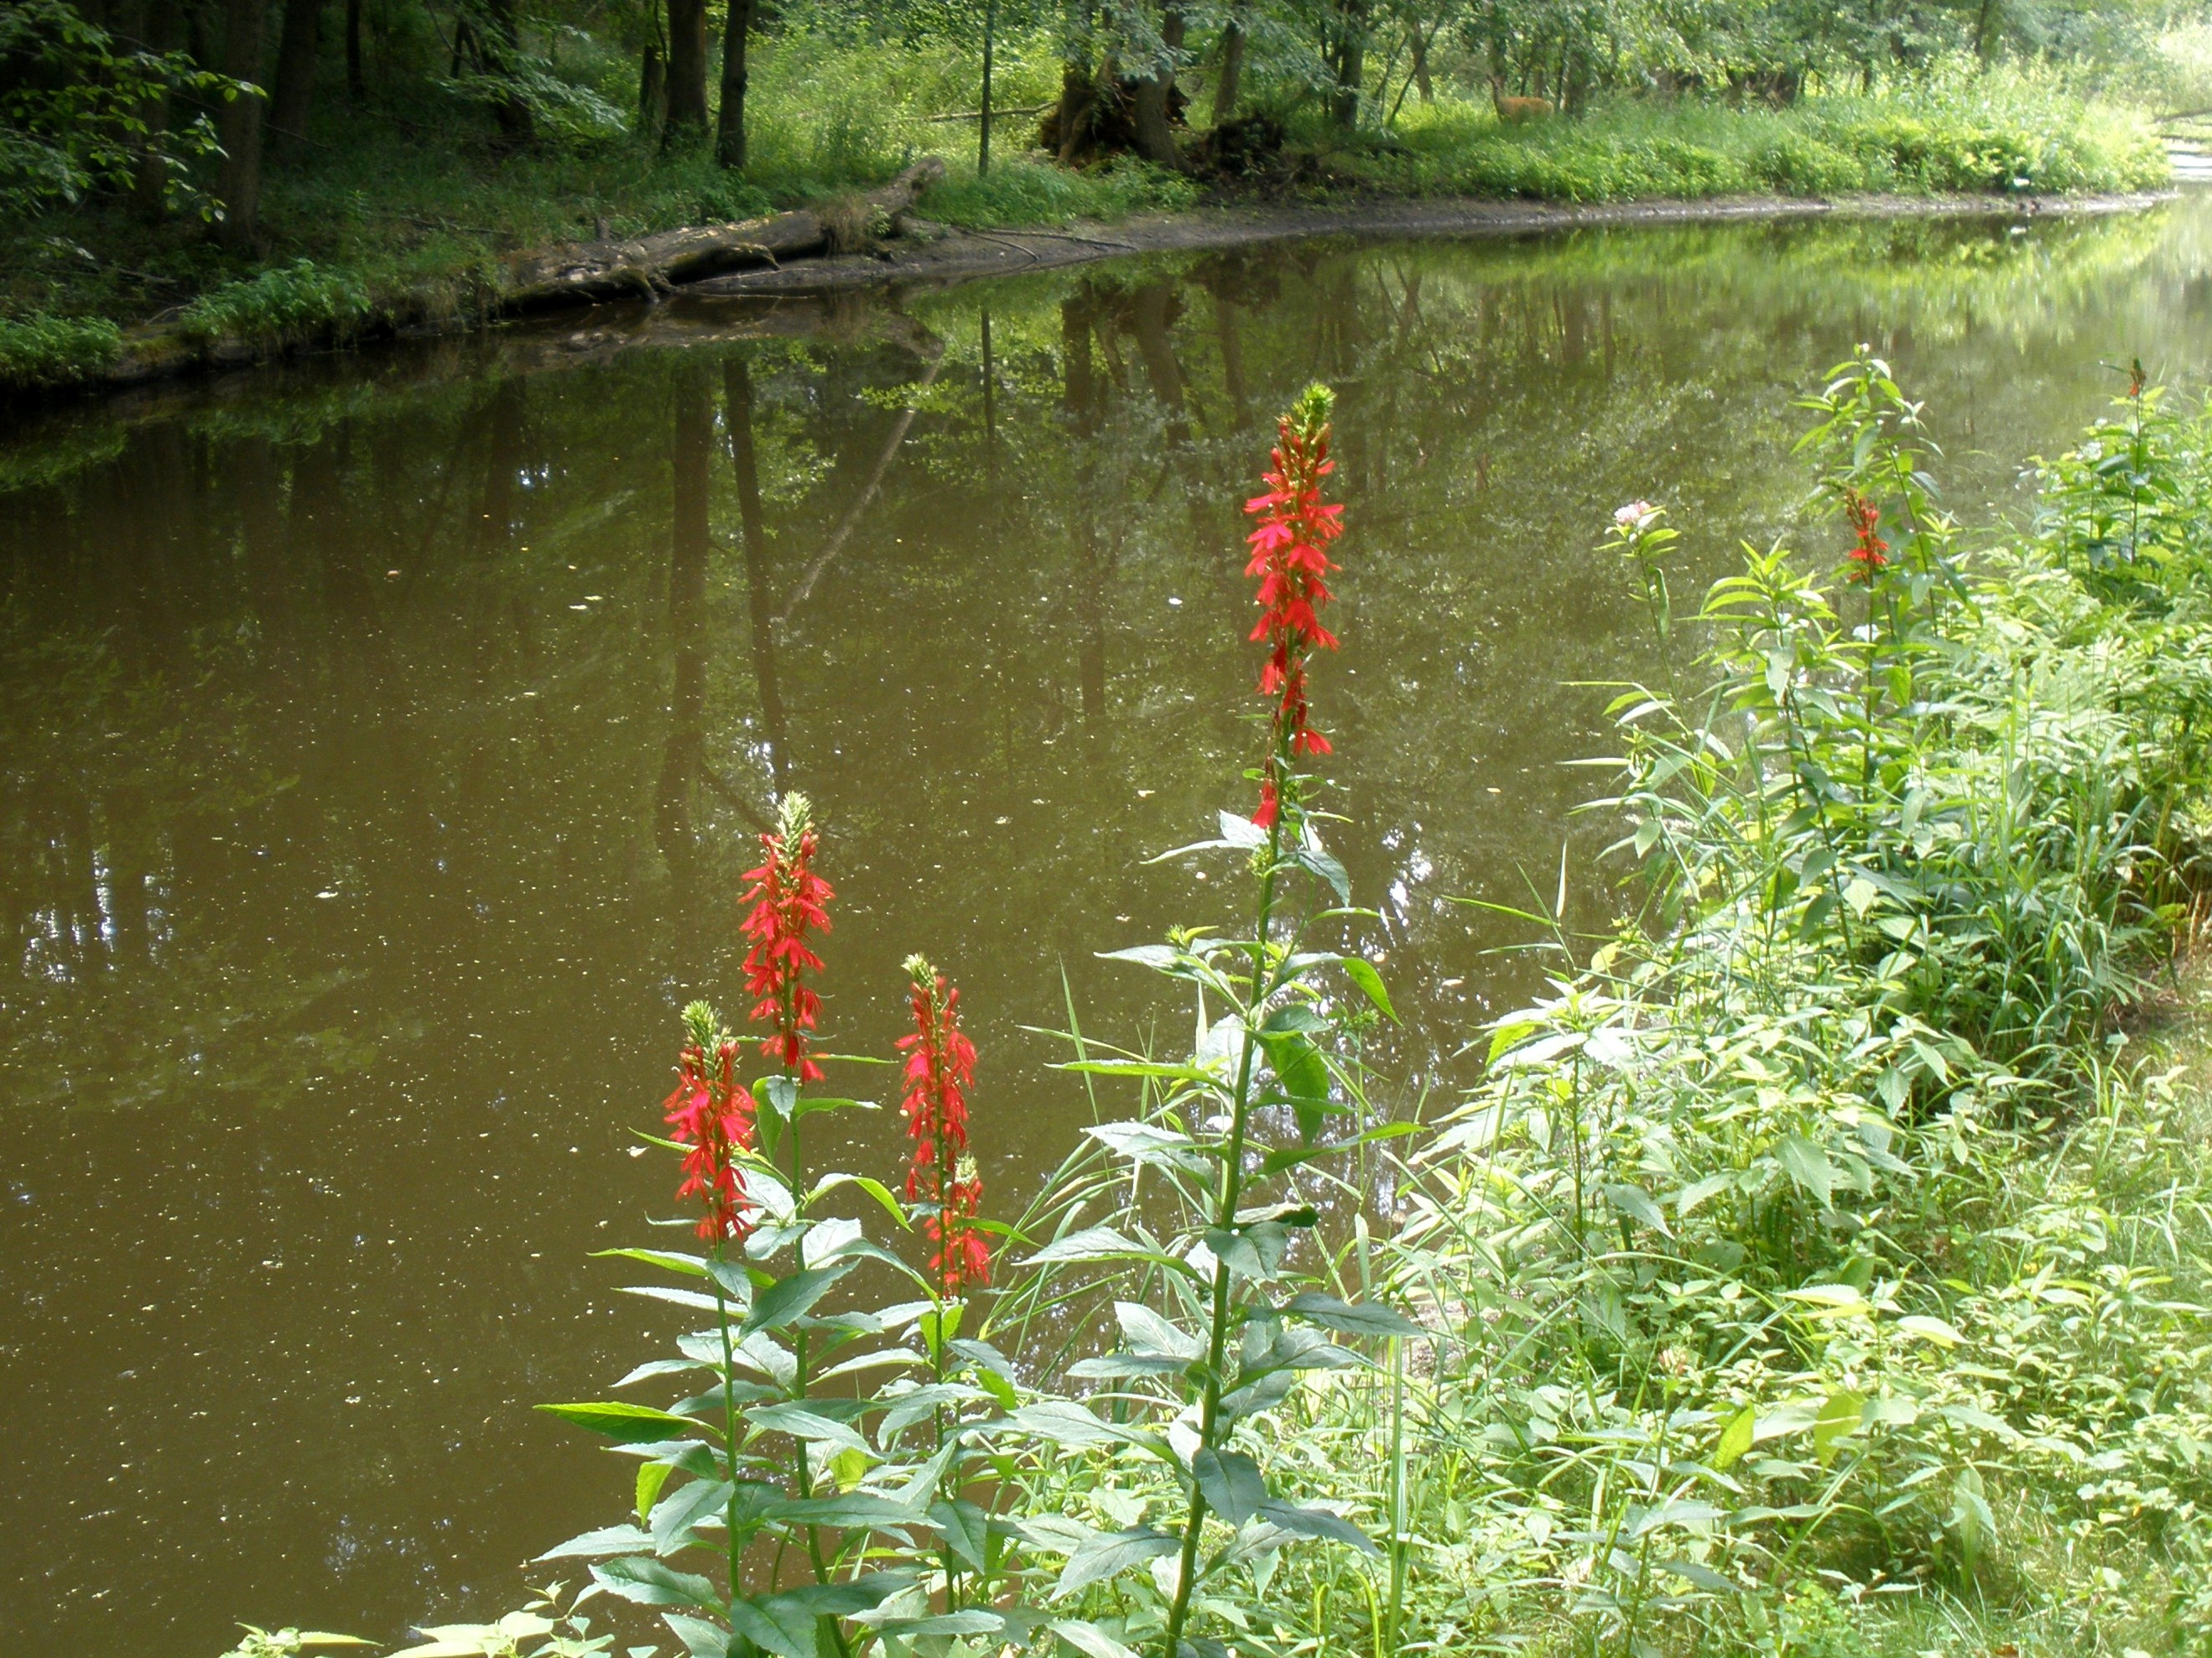 Cardinal flower by day